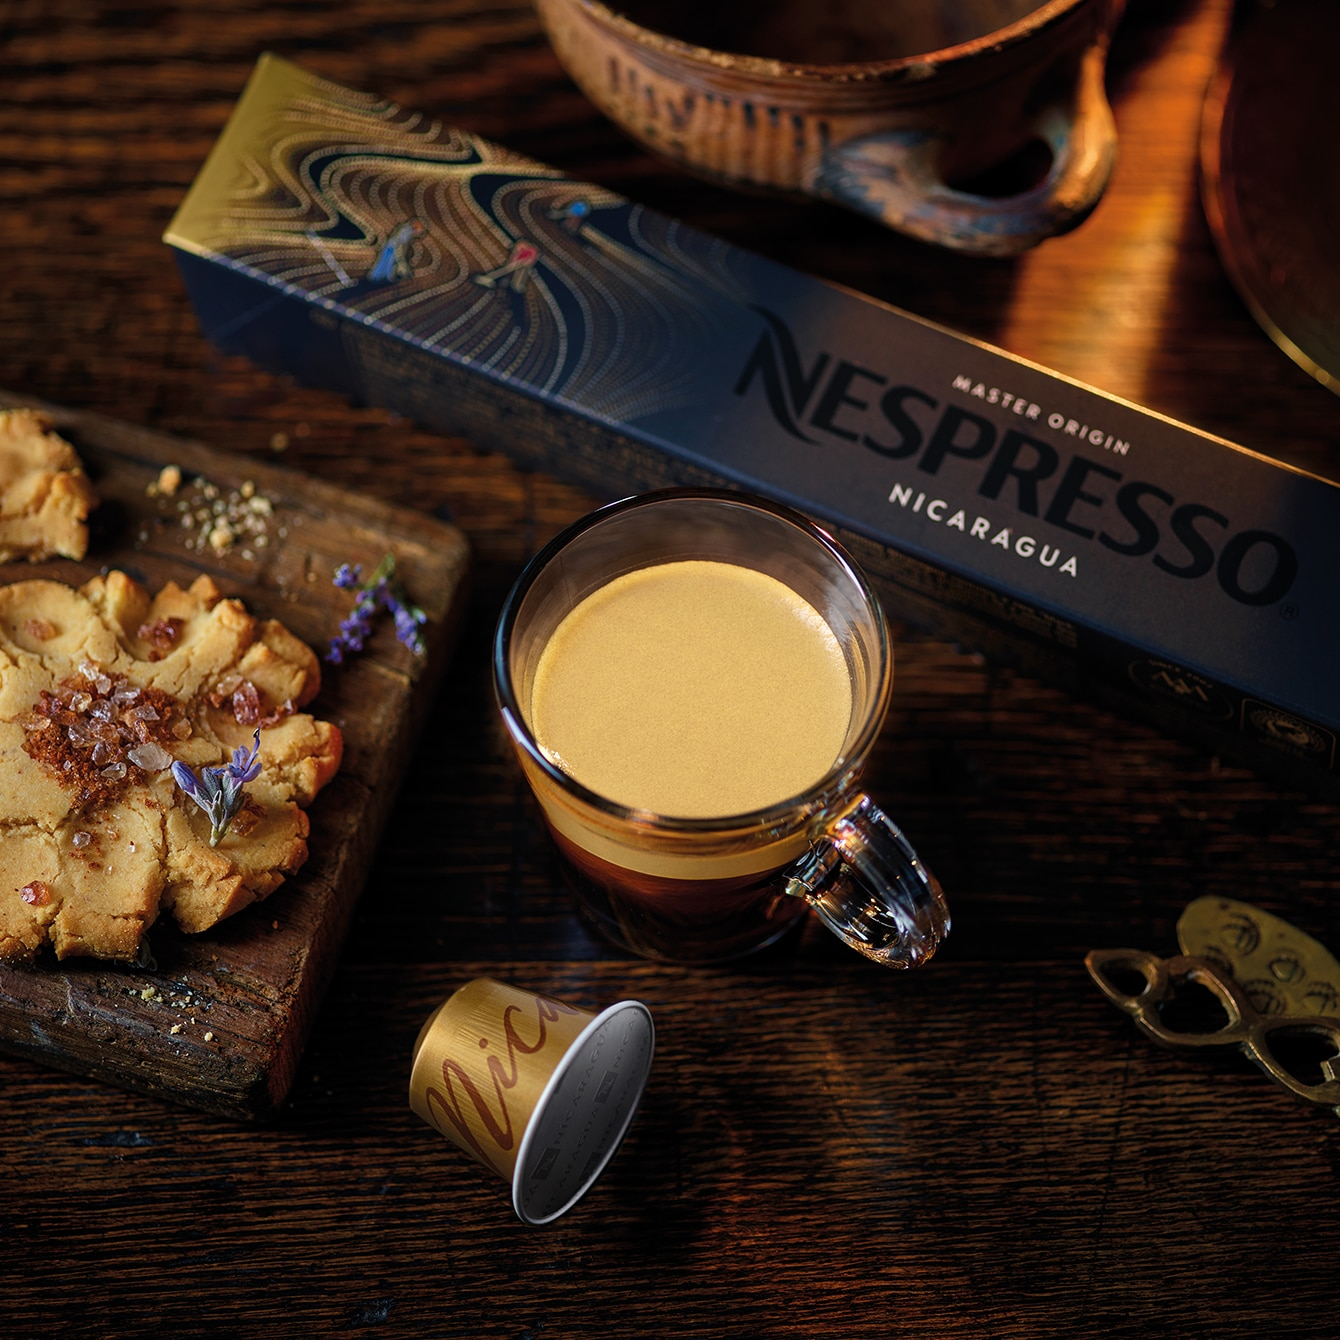 Coffee recipes with Master Origin Nicaragua coffee capsule - Nespresso™ Romania